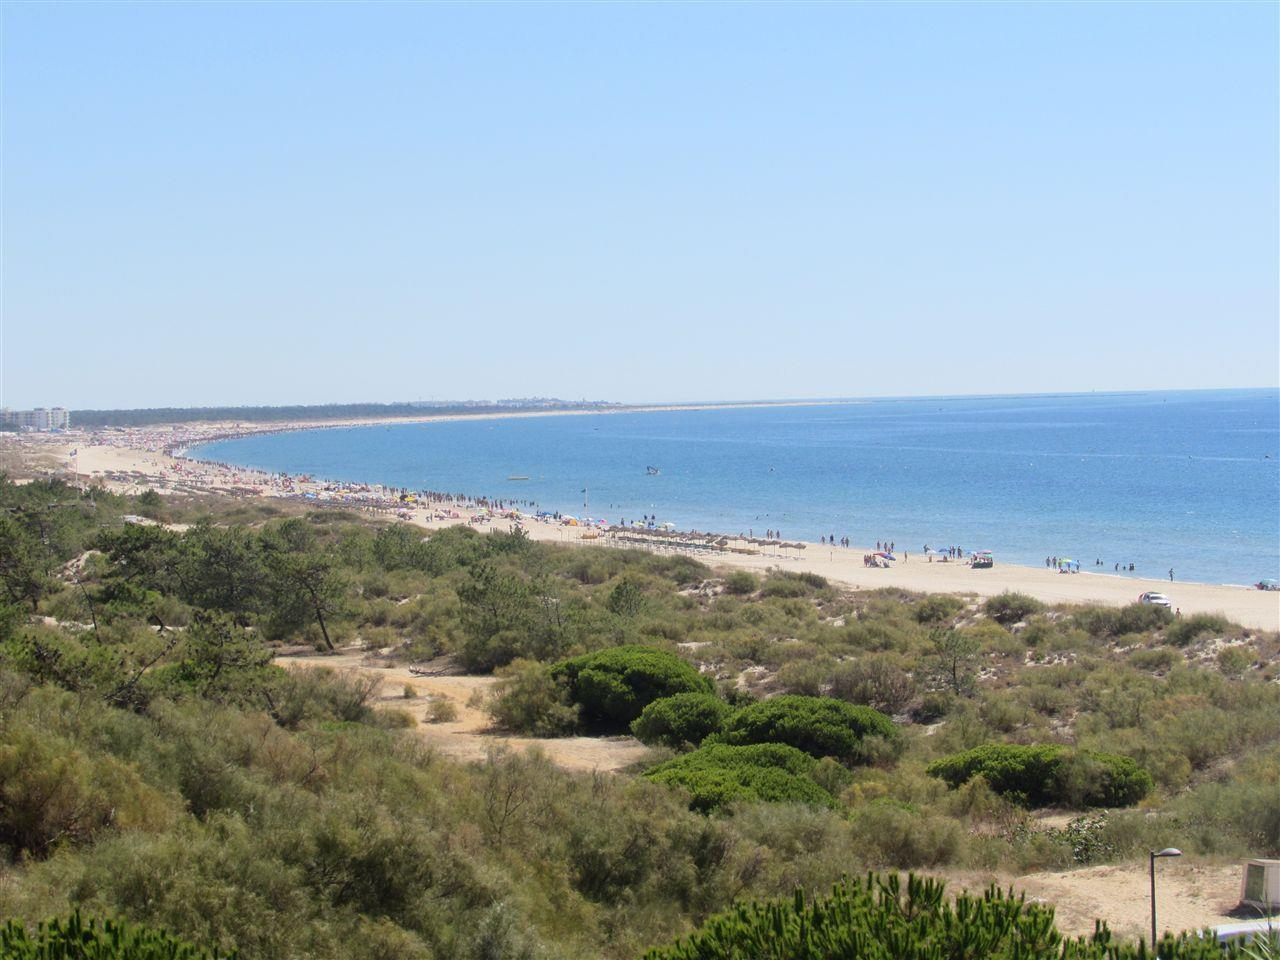 Земля для того Продажа на Real estate land for Sale Castro Marim, Algarve Португалия